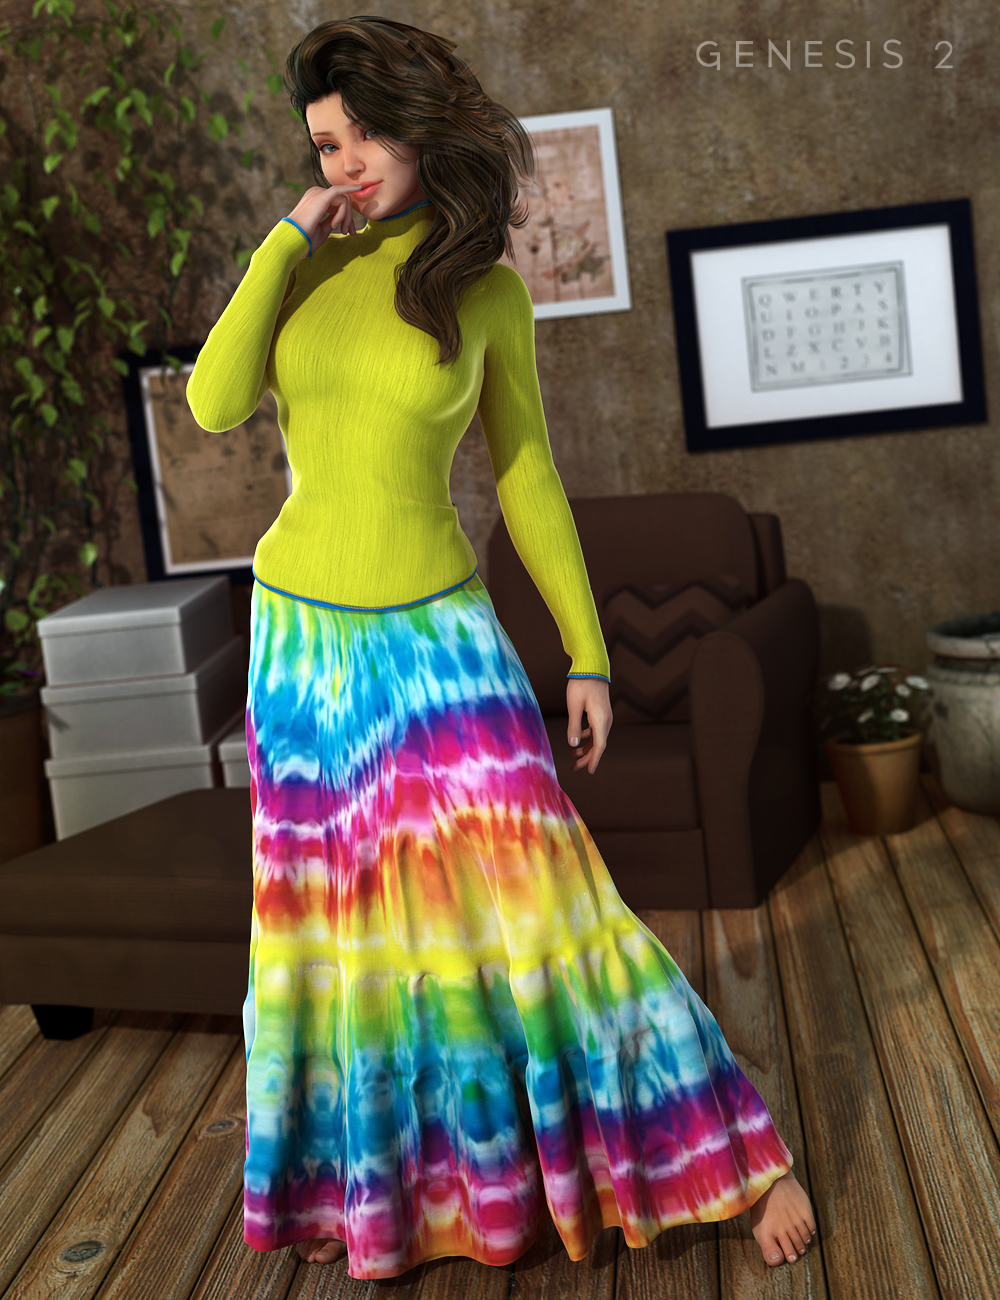 Hippie Chick Outfit for Genesis 2 Female(s) by: Barbara BrundonSarsa, 3D Models by Daz 3D